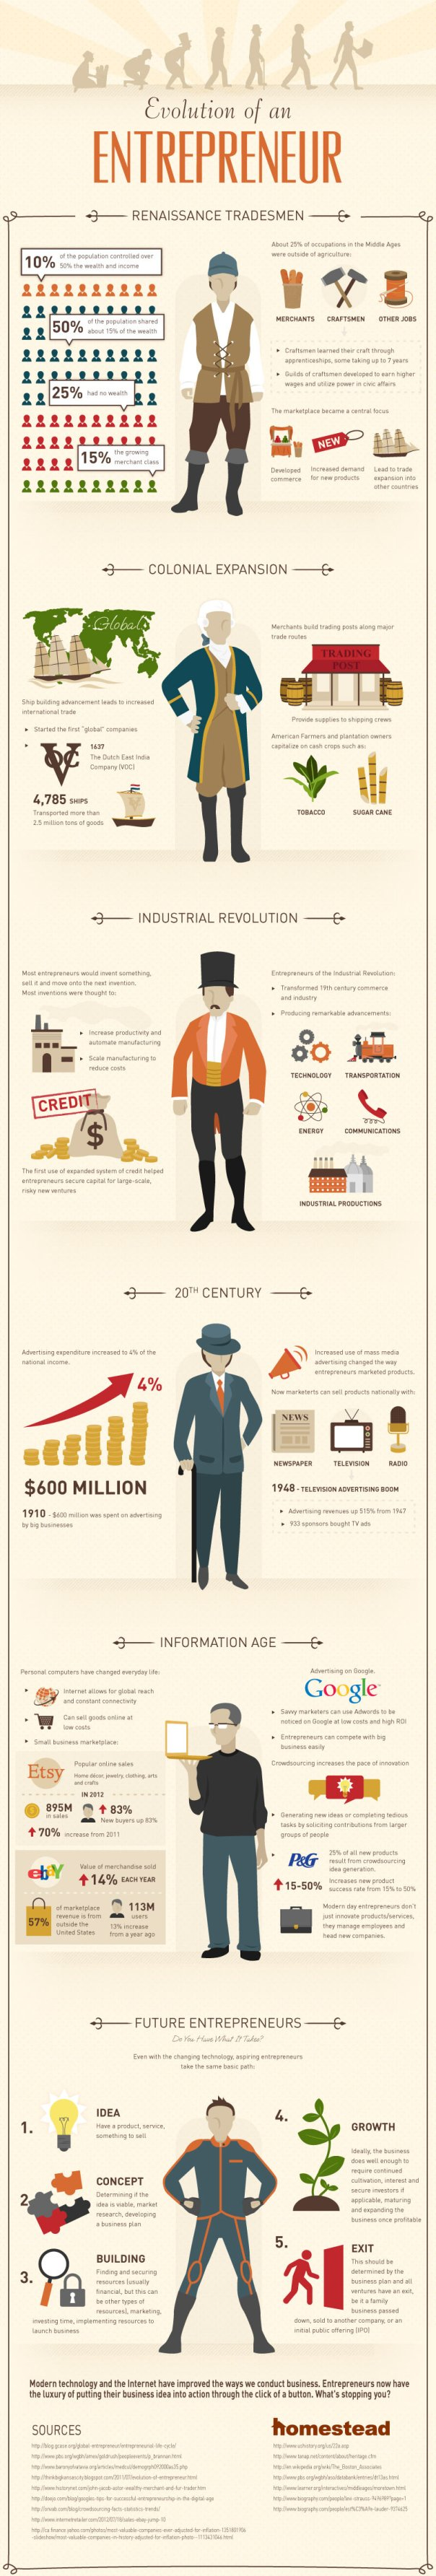 Homestead-Infographic-Entrepreneur